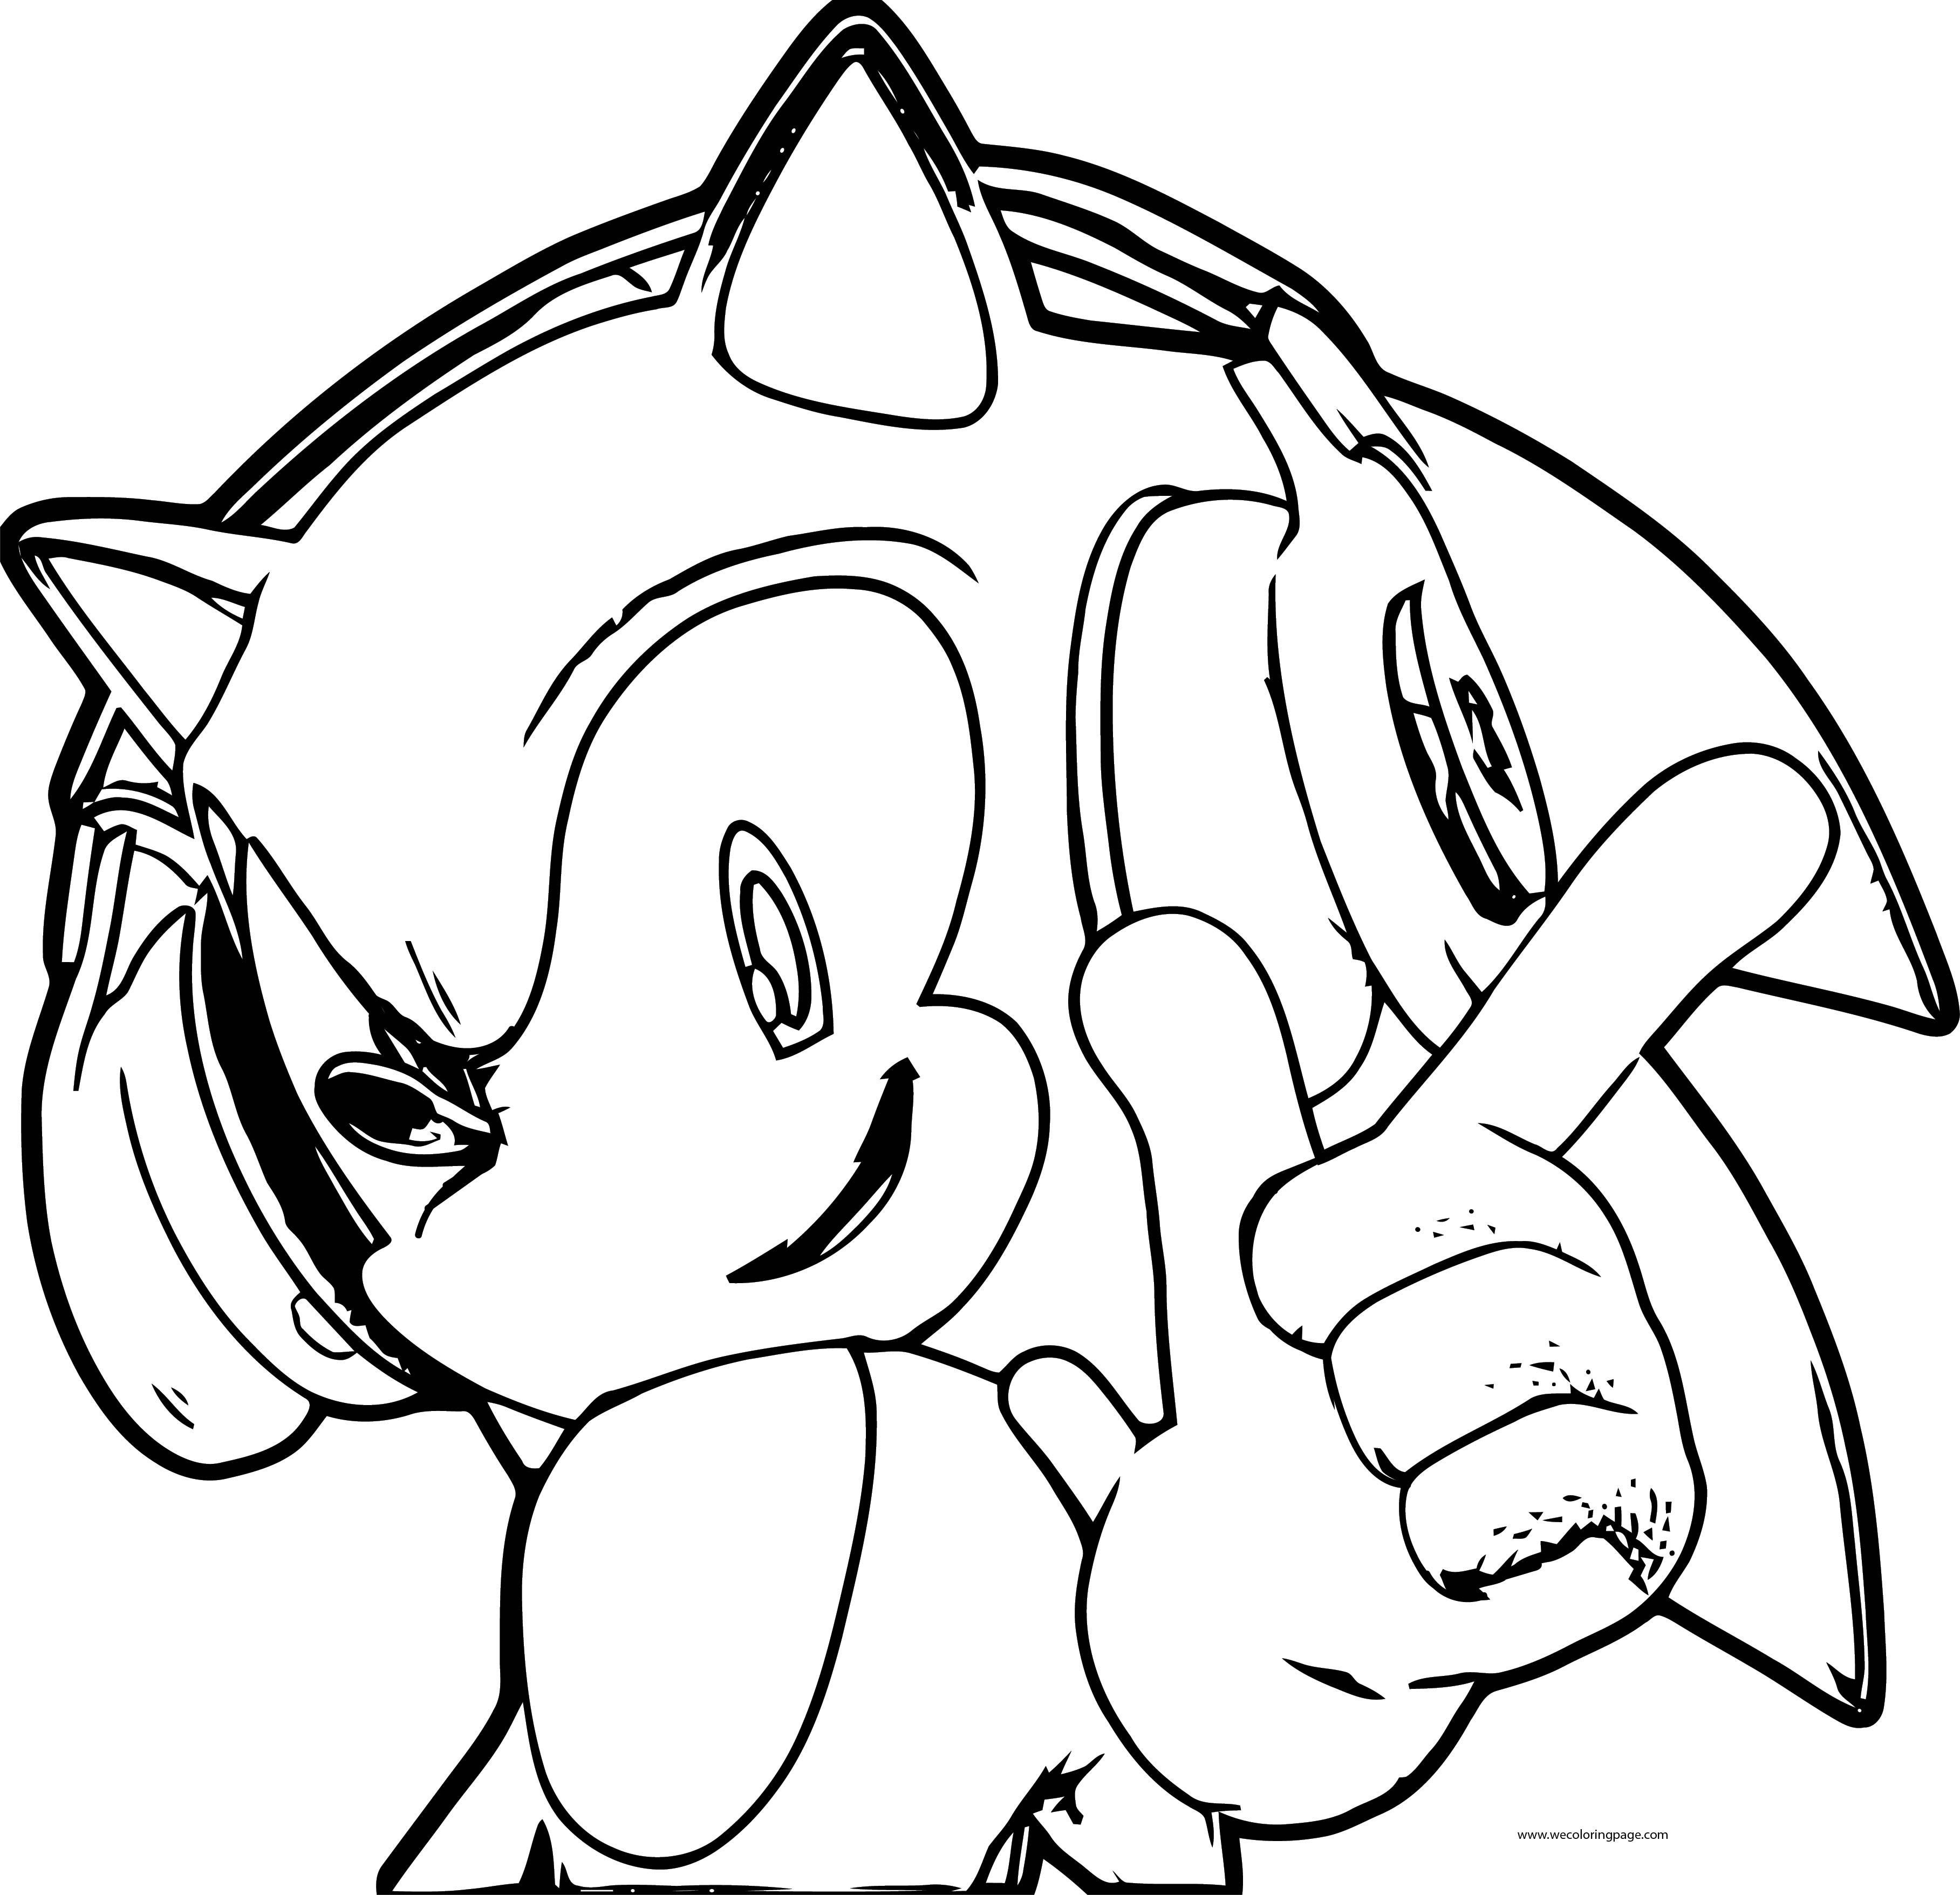 Sonic The Hedgehog Listening Music Coloring Page